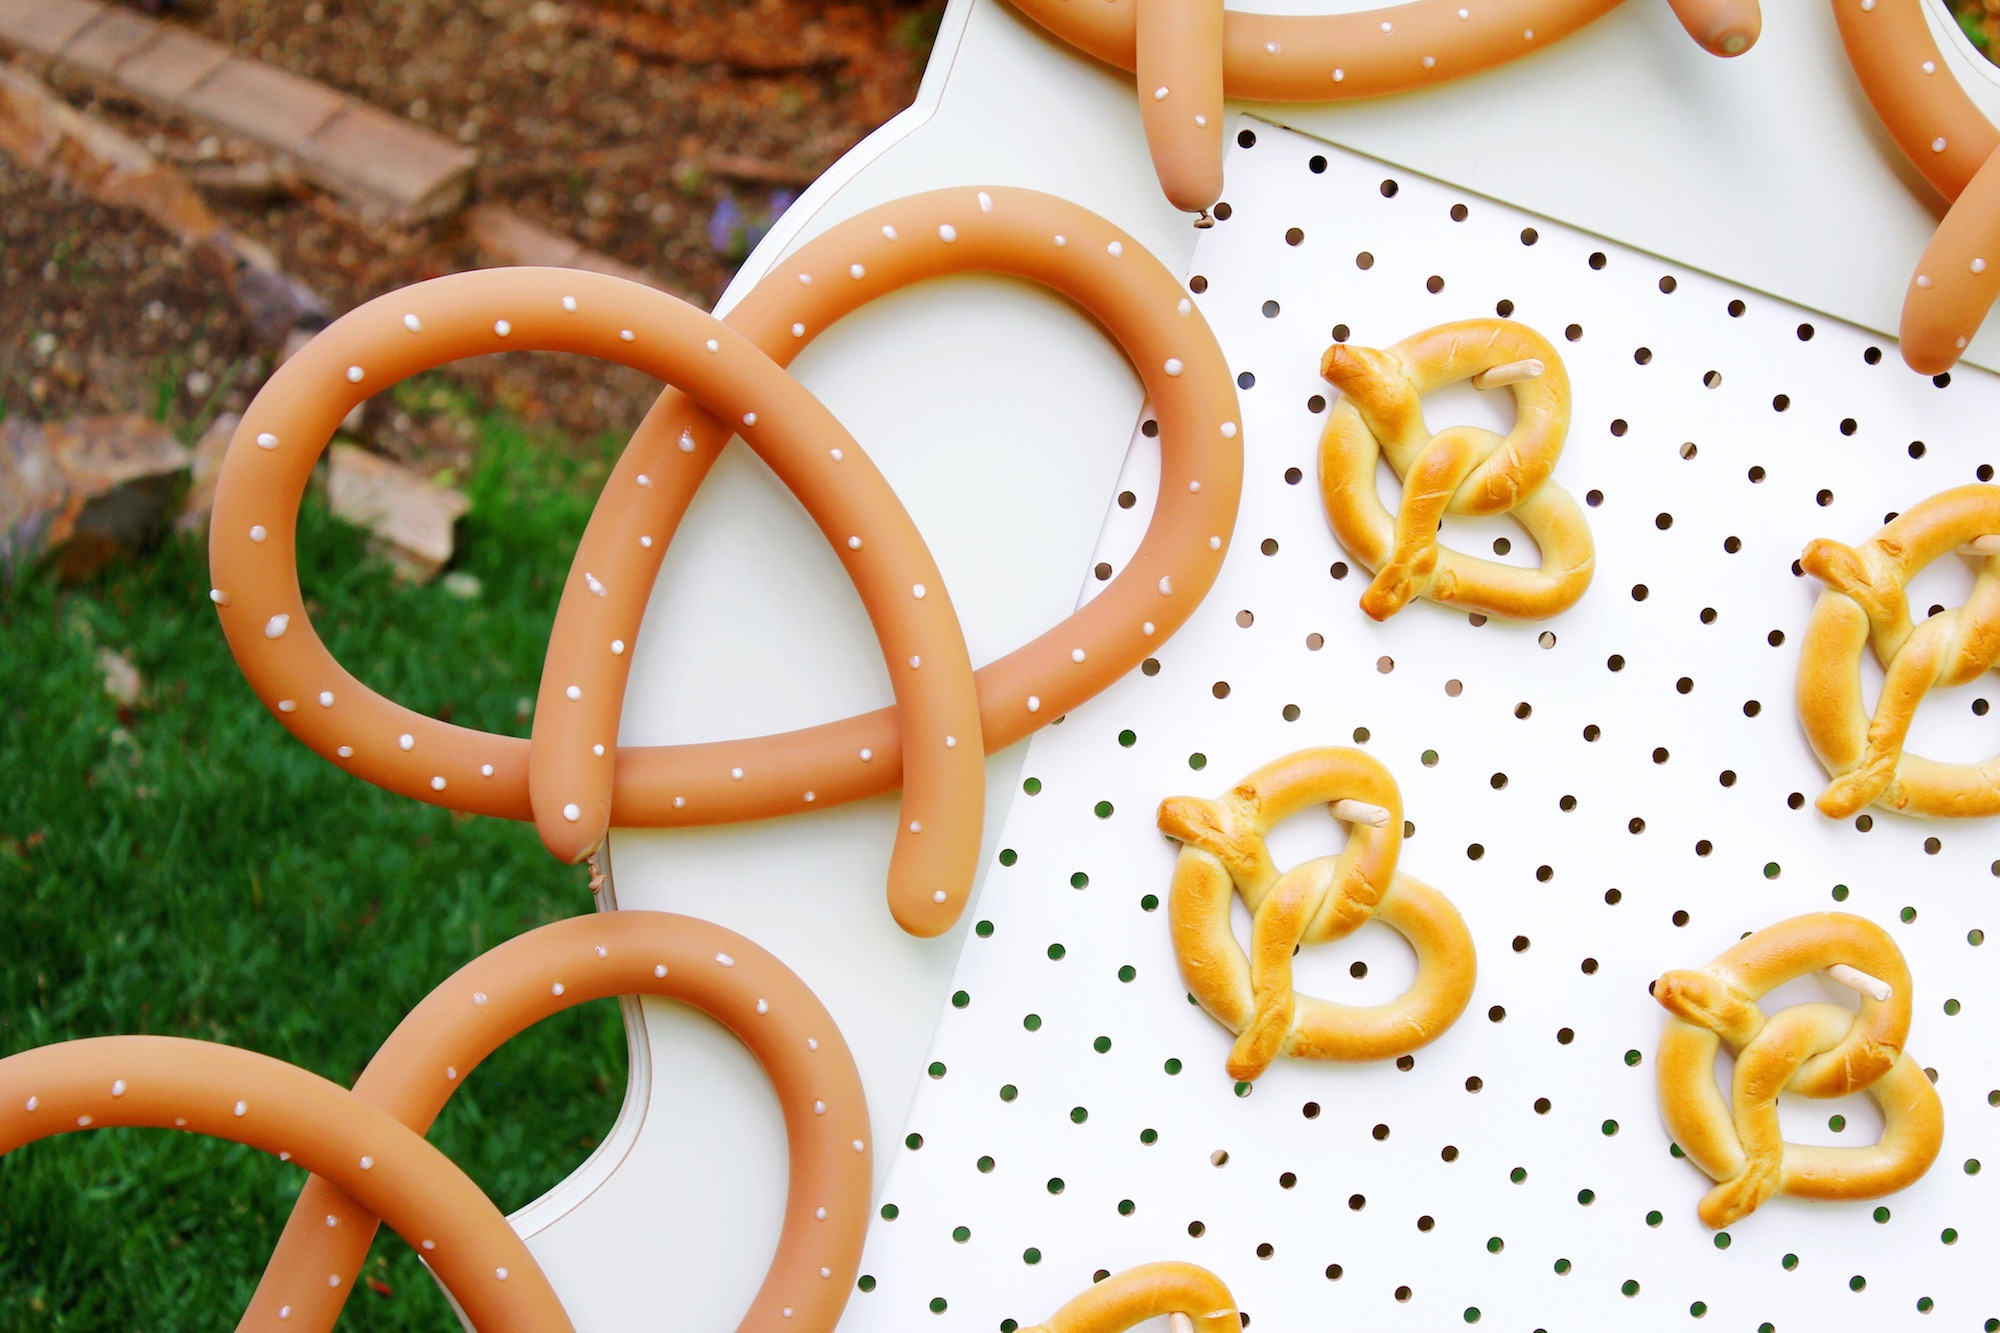 DIY Balloon Animal Pretzel_Design Organize Party.JPG